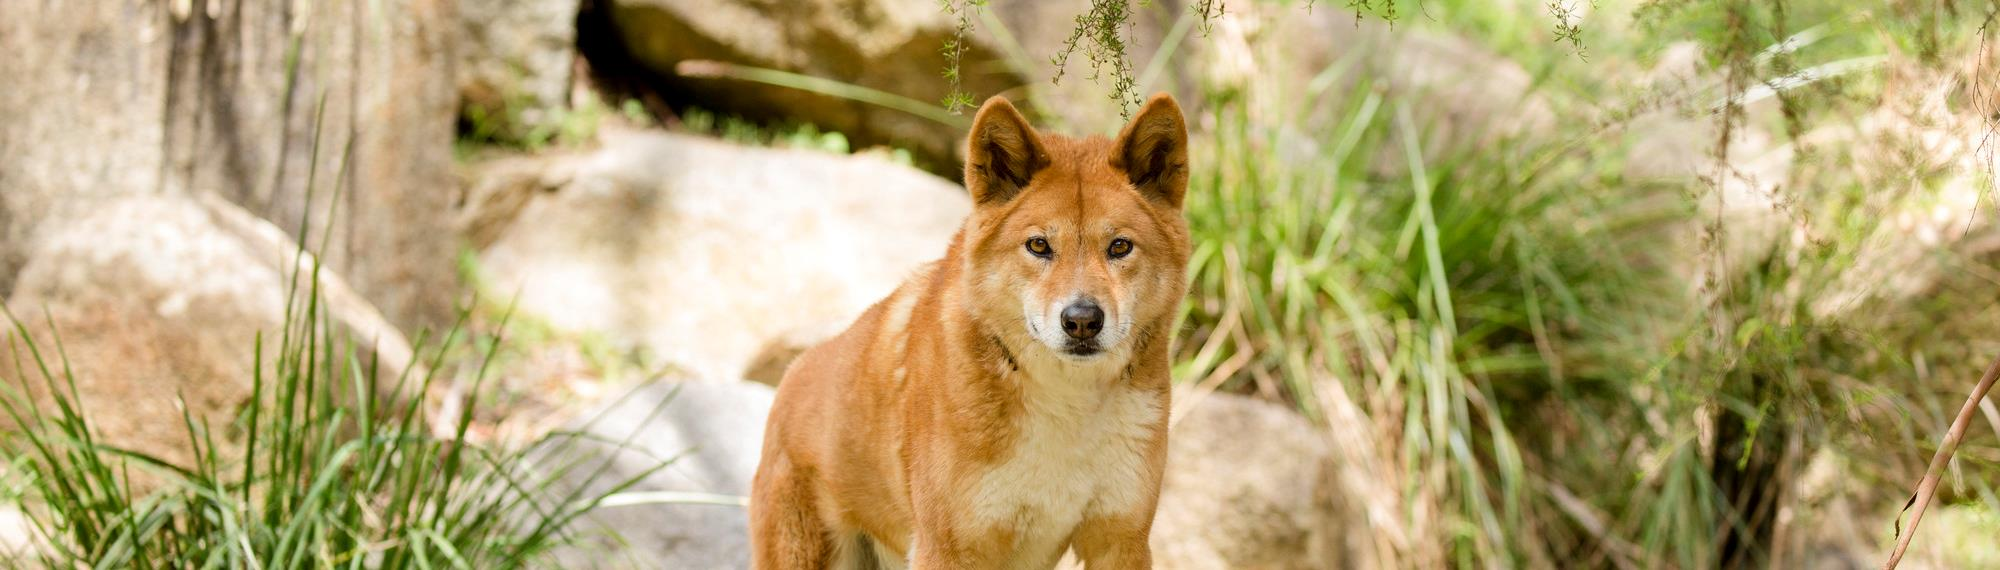 Dingo looking sternly at camera. He is a orange brown colour with ears up, standing on a log in a rocky grassed habitat.